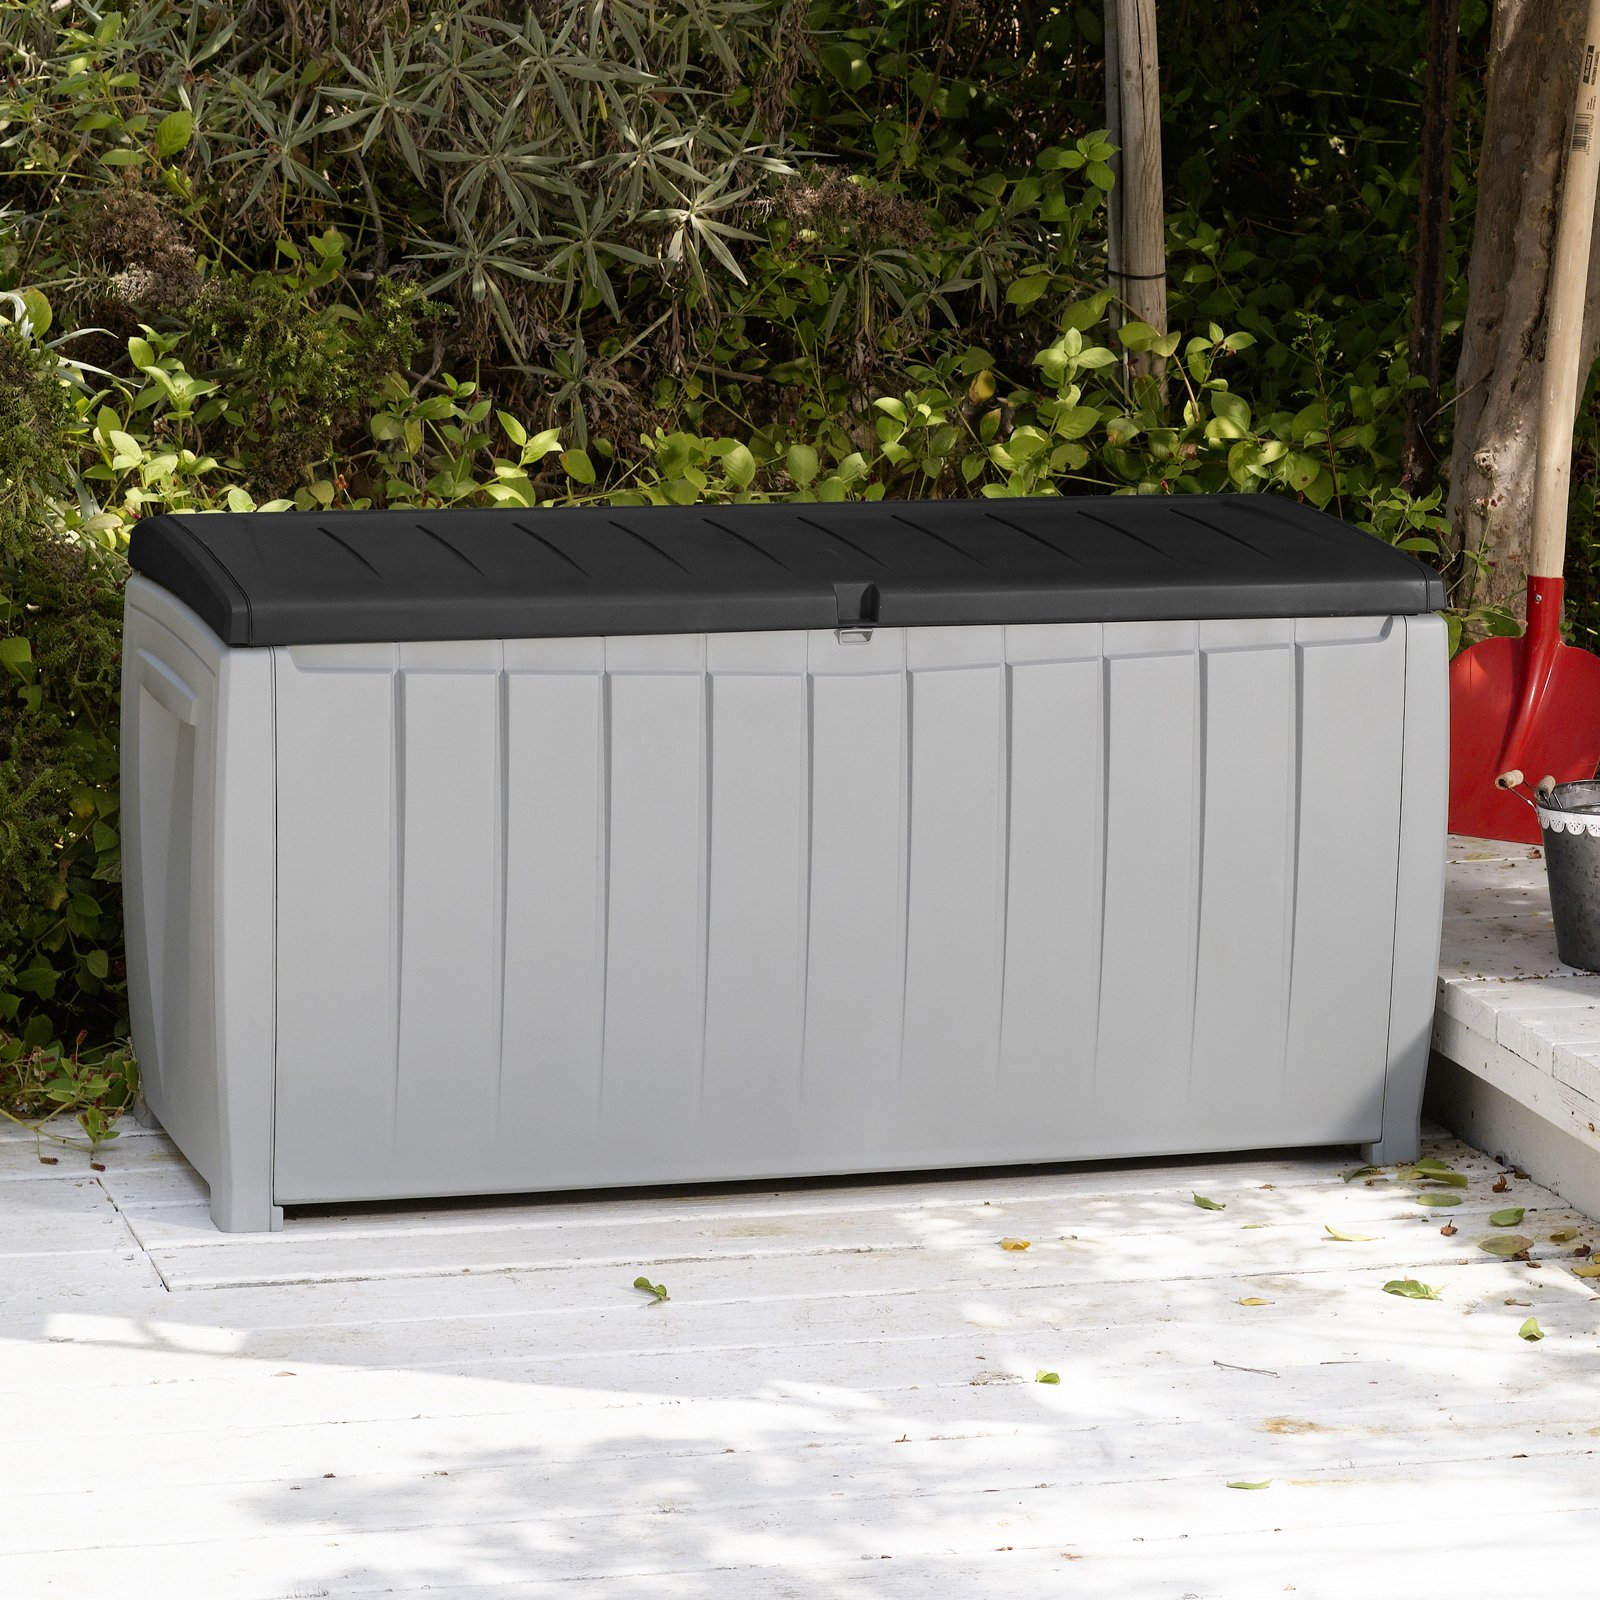 Large Deck Box for Cushions | Keter Deck Box 150 | Keter 150 Gallon Deck Box